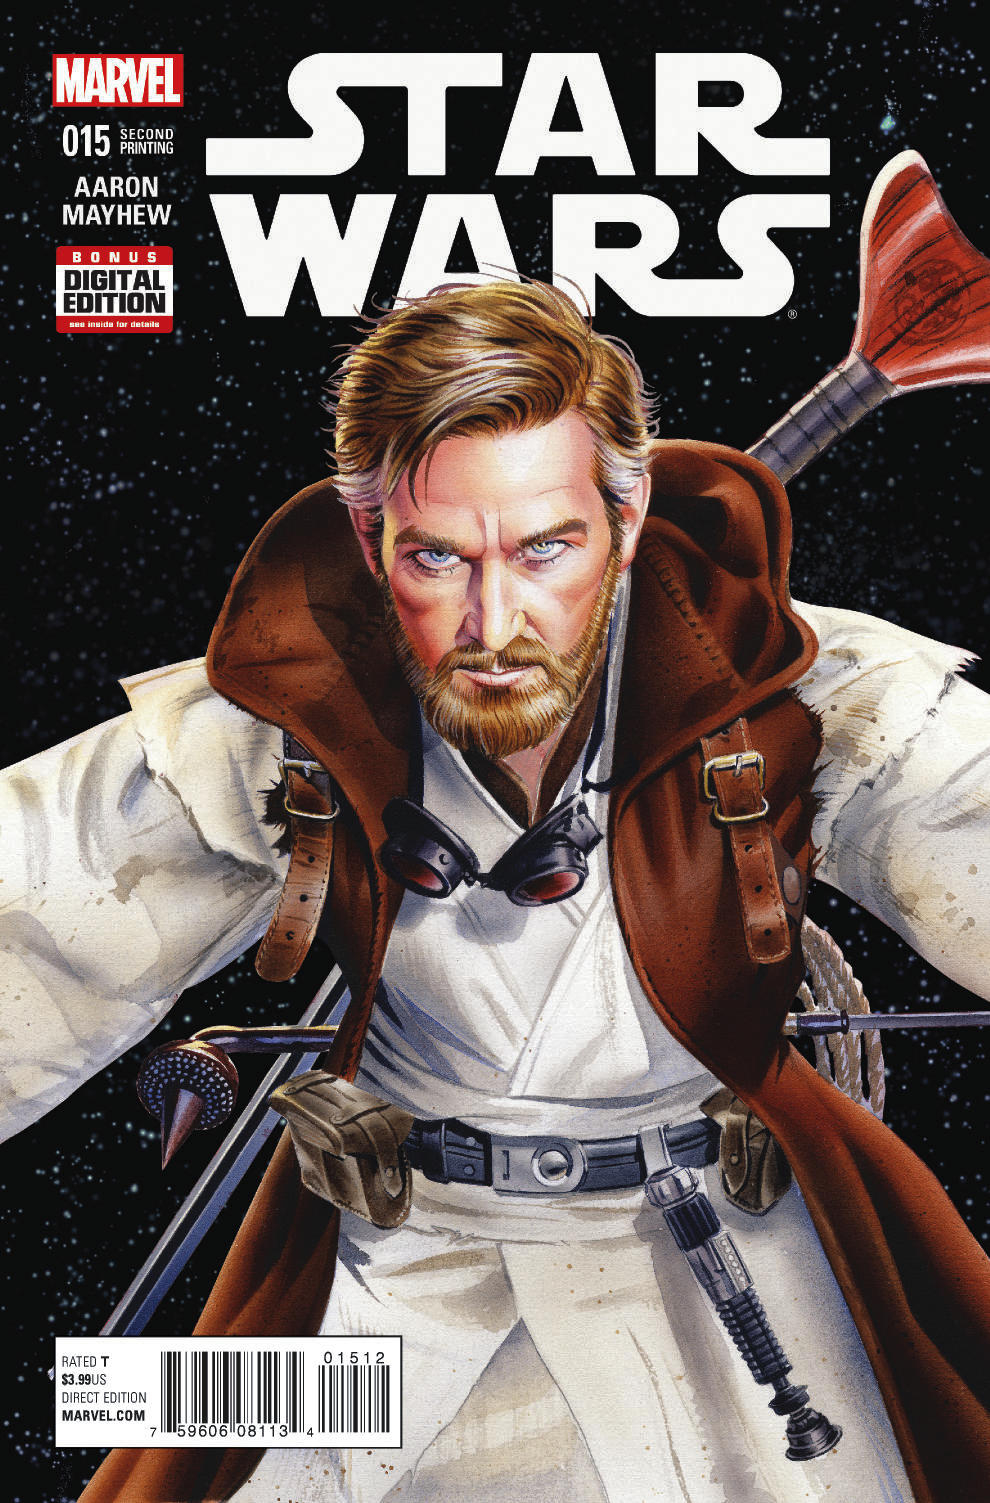 STAR WARS #15 MAYHEW 2ND PTG VAR